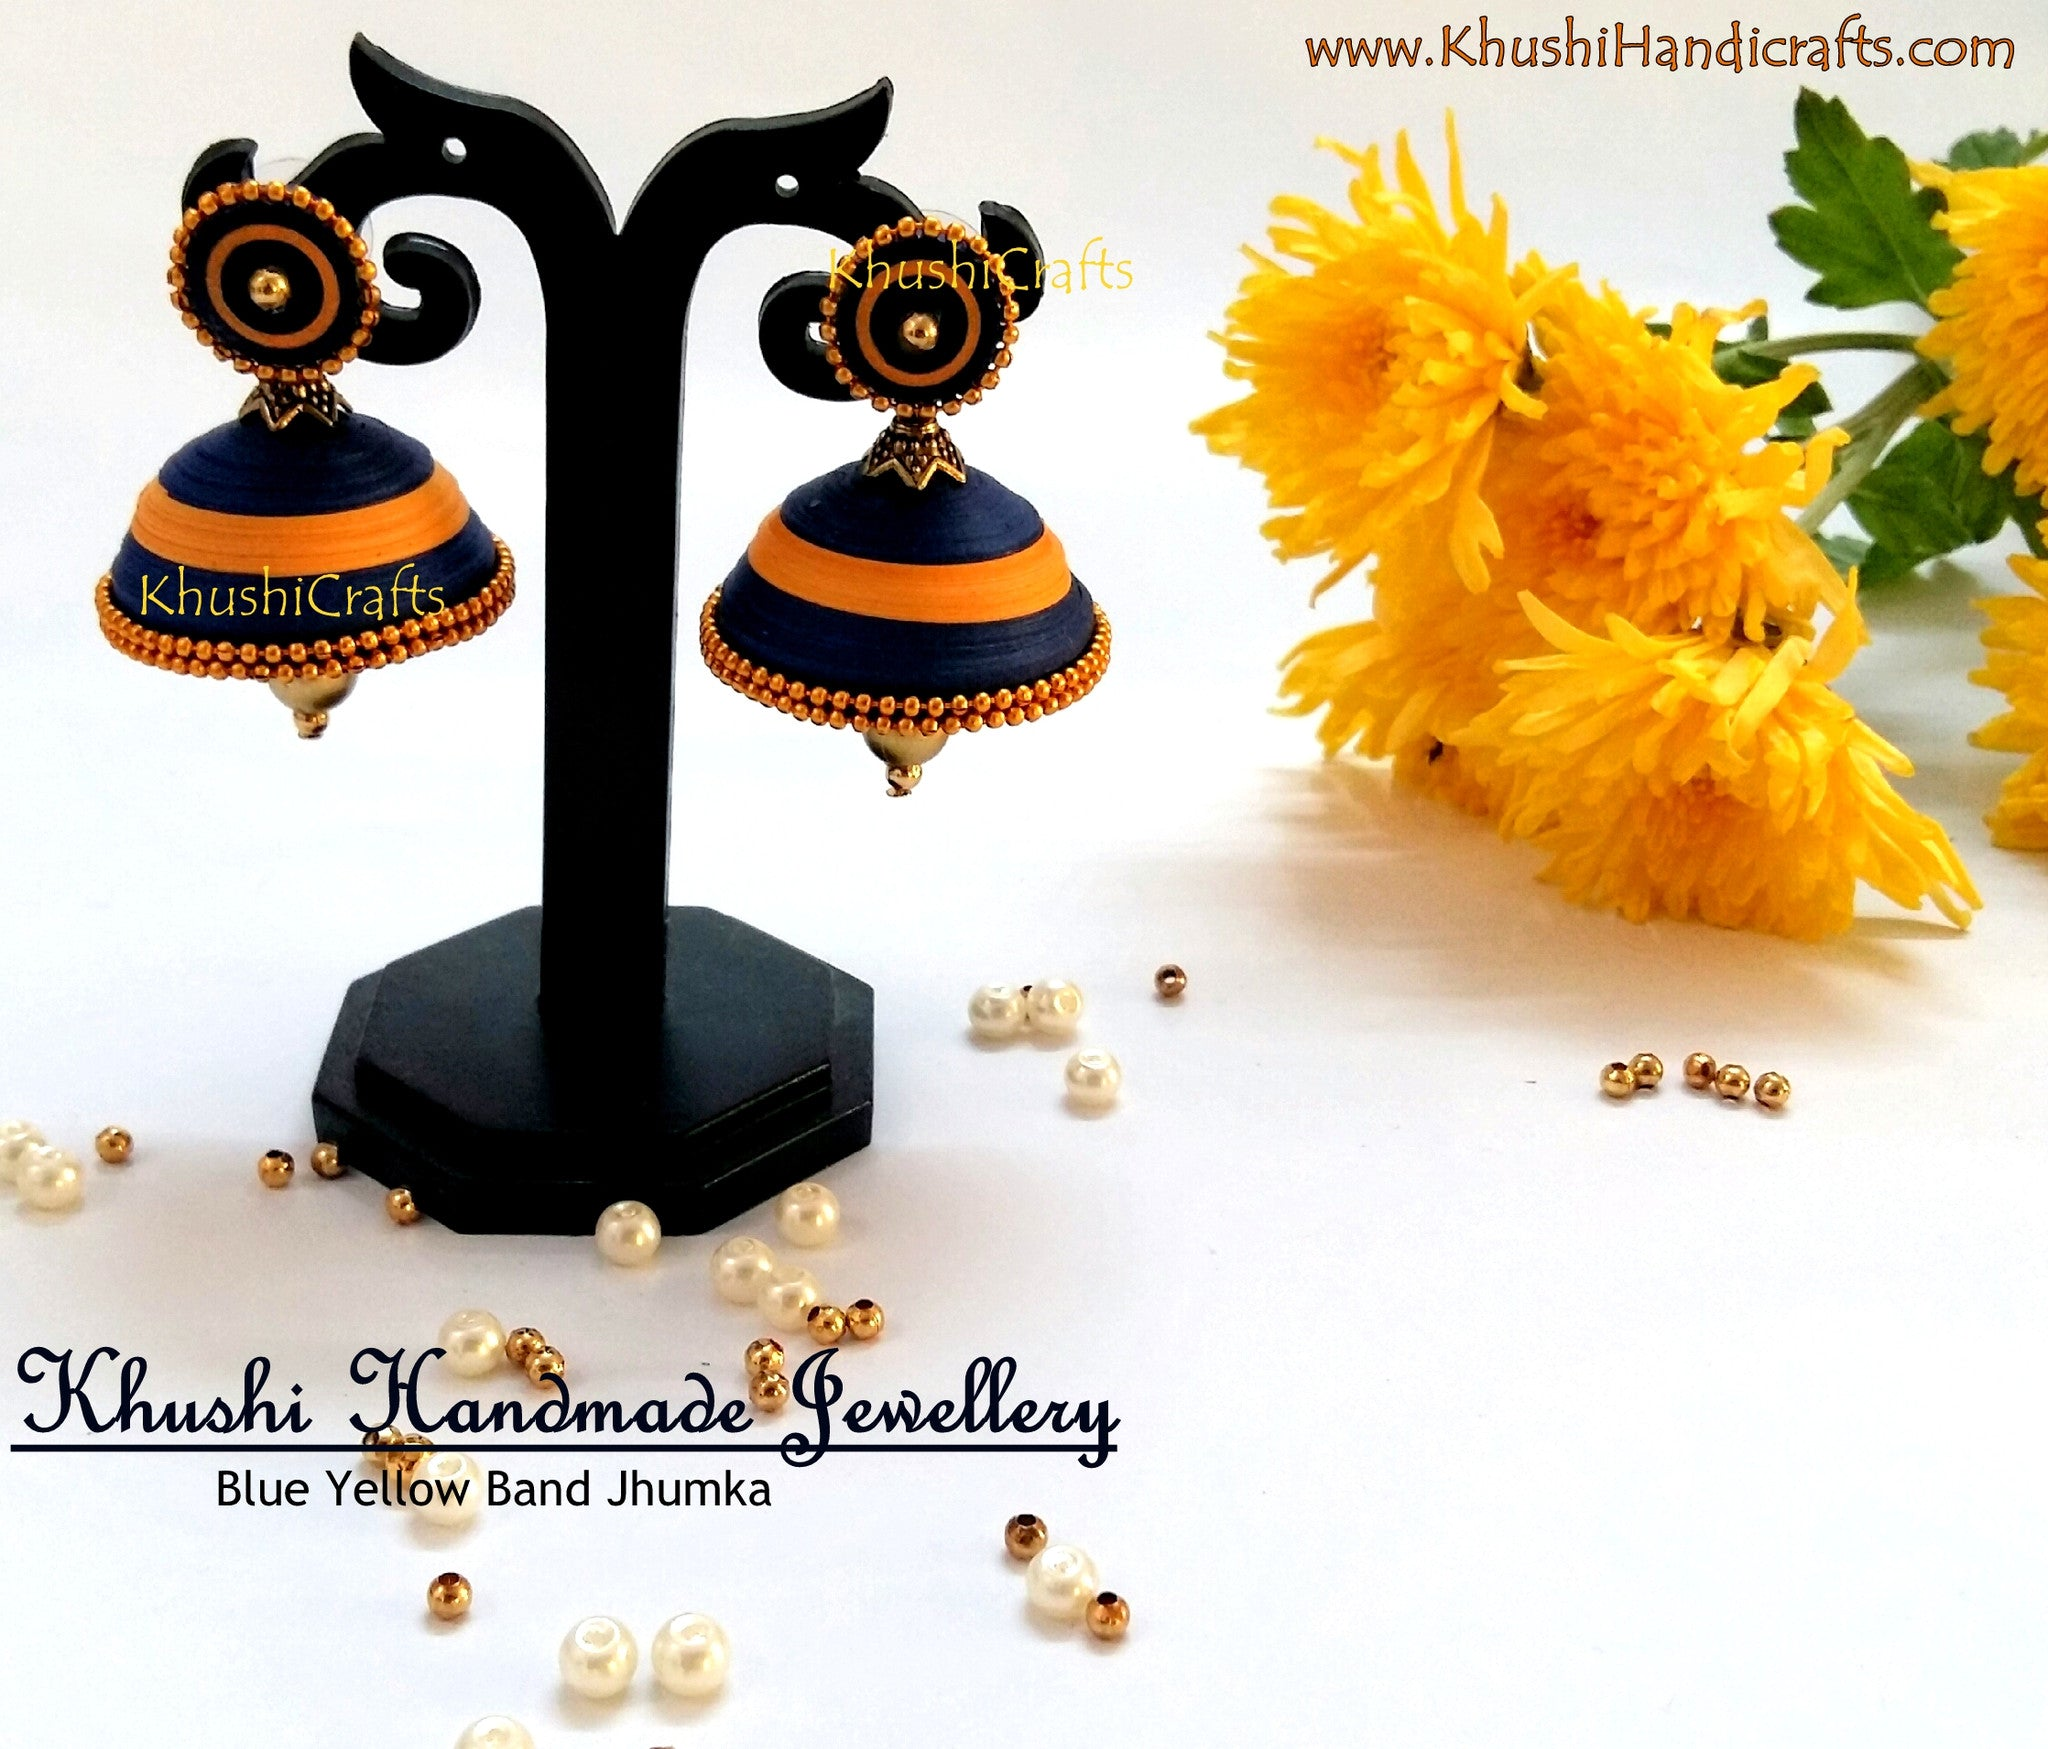 Blue Yellow Band Jhumka - Khushi Handmade Jewellery